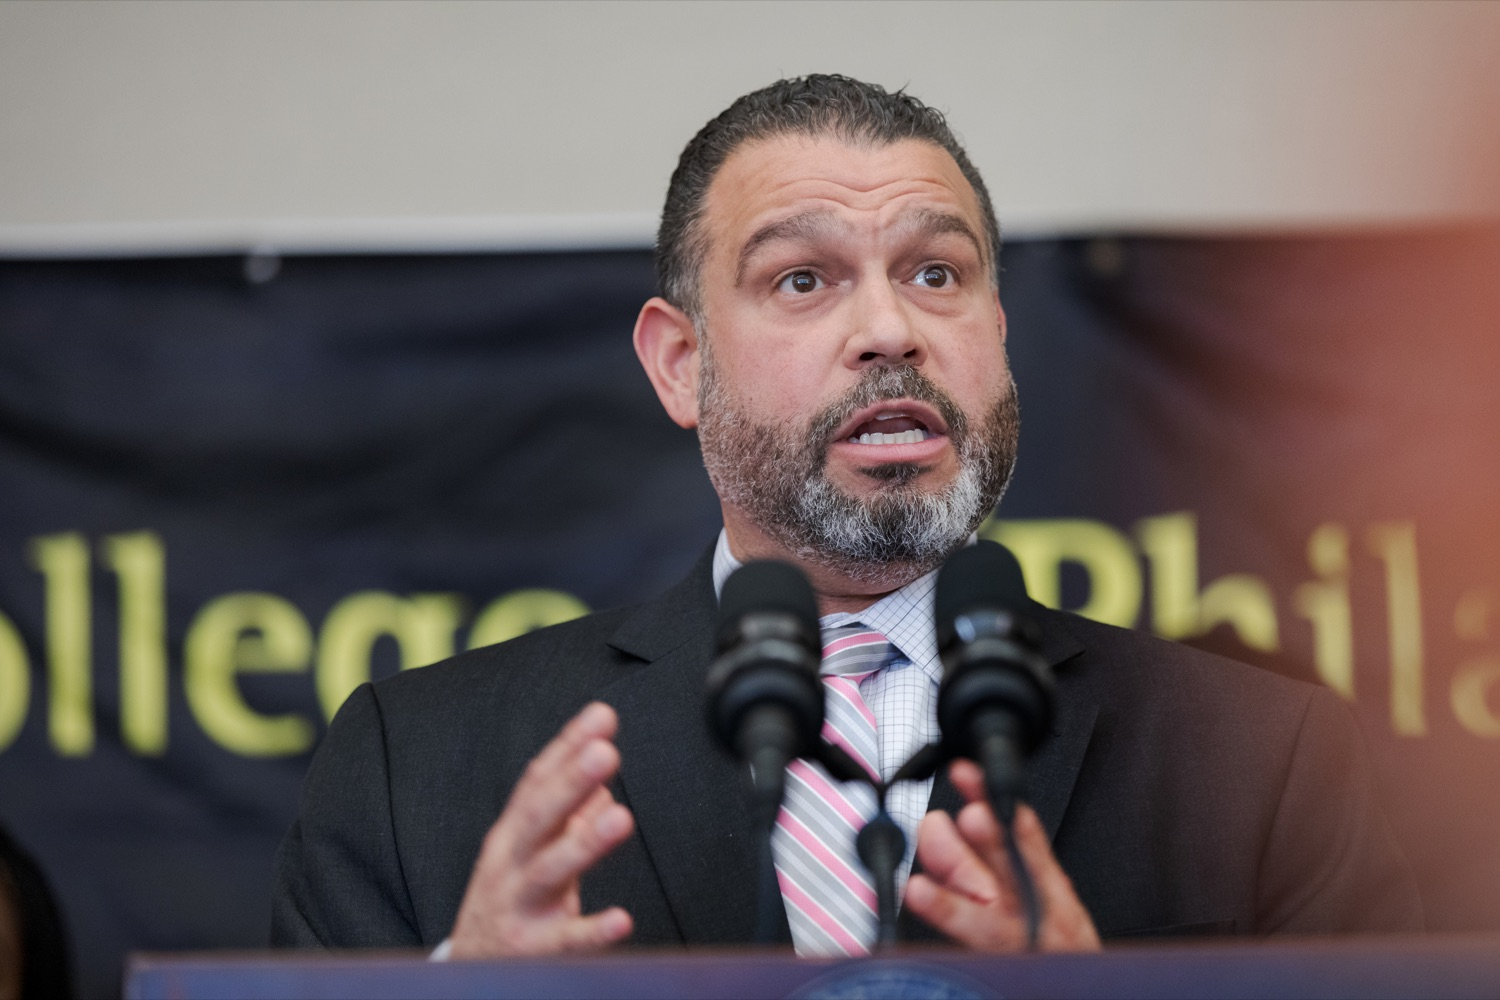 "<a href=""http://filesource.abacast.com/commonwealthofpa/photo/17592_EDU_Aspiring_NK_003.JPG"" target=""_blank"">⇣ Download Photo<br></a>Pennsylvania Department of Education Secretary Pedro A. Rivera speaks during a press conference, announcing the School District of Philadelphia's new pilot program, Aspiring to Educate, that aims to cultivate and diversify the citys educator pool, inside Community College of Philadelphia's Center for Business and Industry on Wednesday, November 20, 2019."